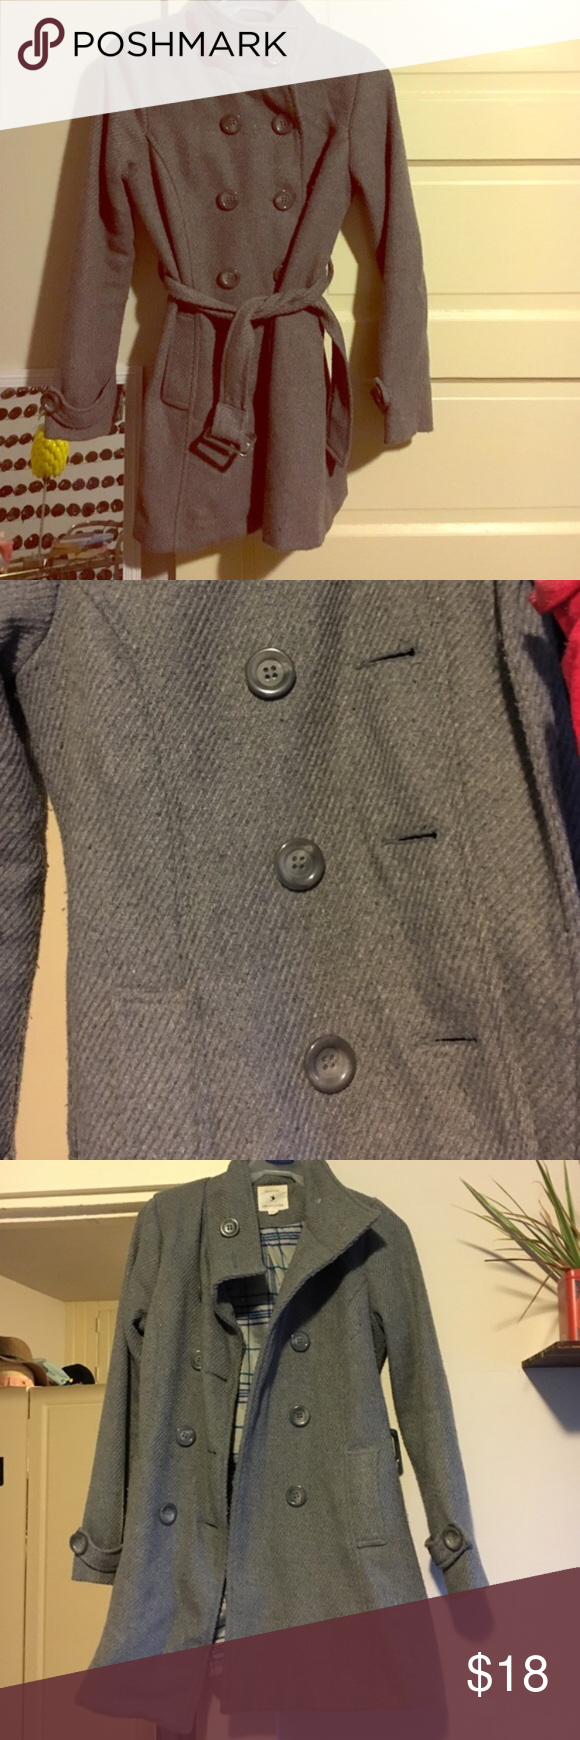 Forever 21 Grey Peacoat Grey Forever 21 peacoat. Worn bunch of times and it is extremely comfy. Can be tied around the waist or belted. Buttons the entire way up. Forever 21 Jackets & Coats Pea Coats